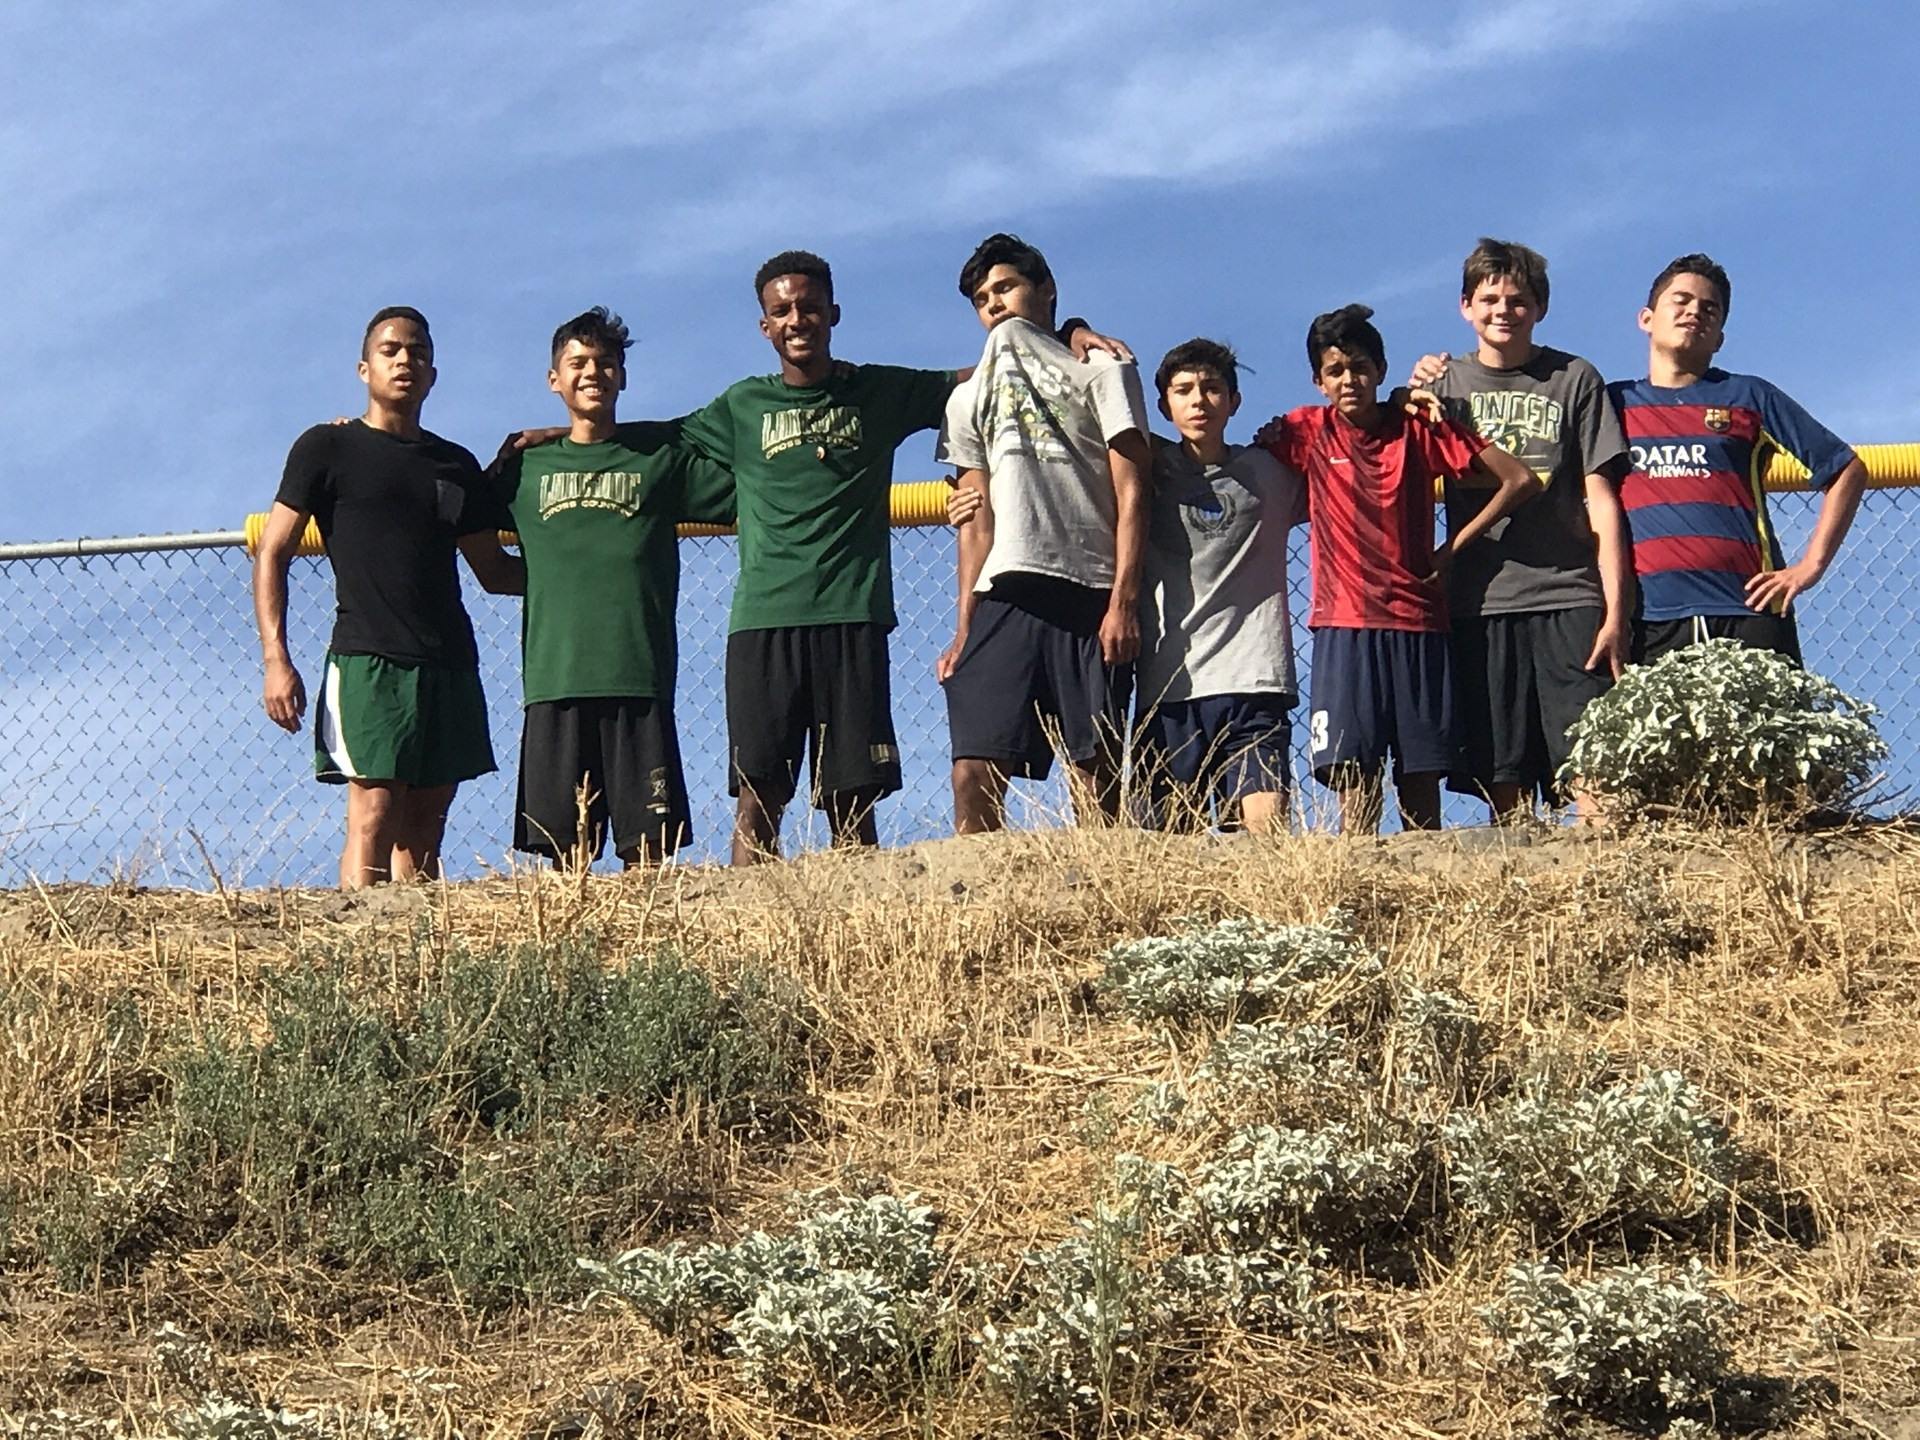 team picture after the hill